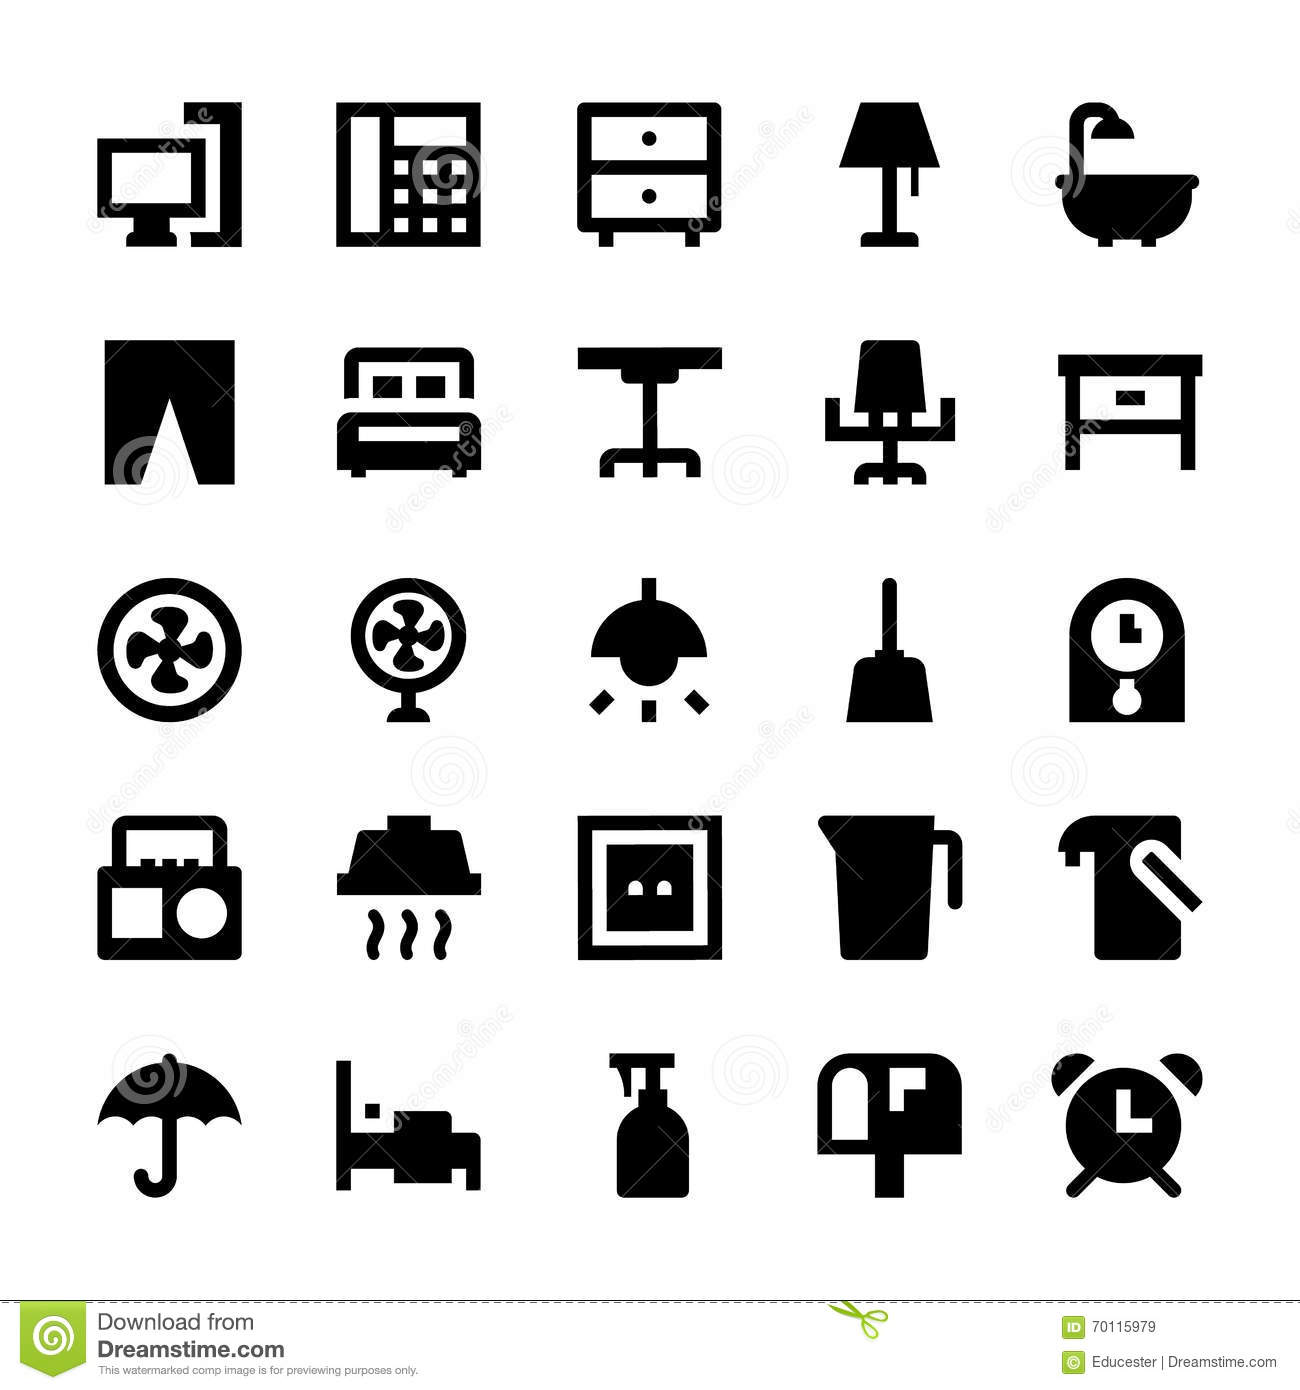 Home Appliances Vector Icons 3 Stock Illustration Image  : home appliances vector icons icon pack absolutely bursting resources you will love to use your next 70115979 from www.dreamstime.com size 1300 x 1390 jpeg 93kB